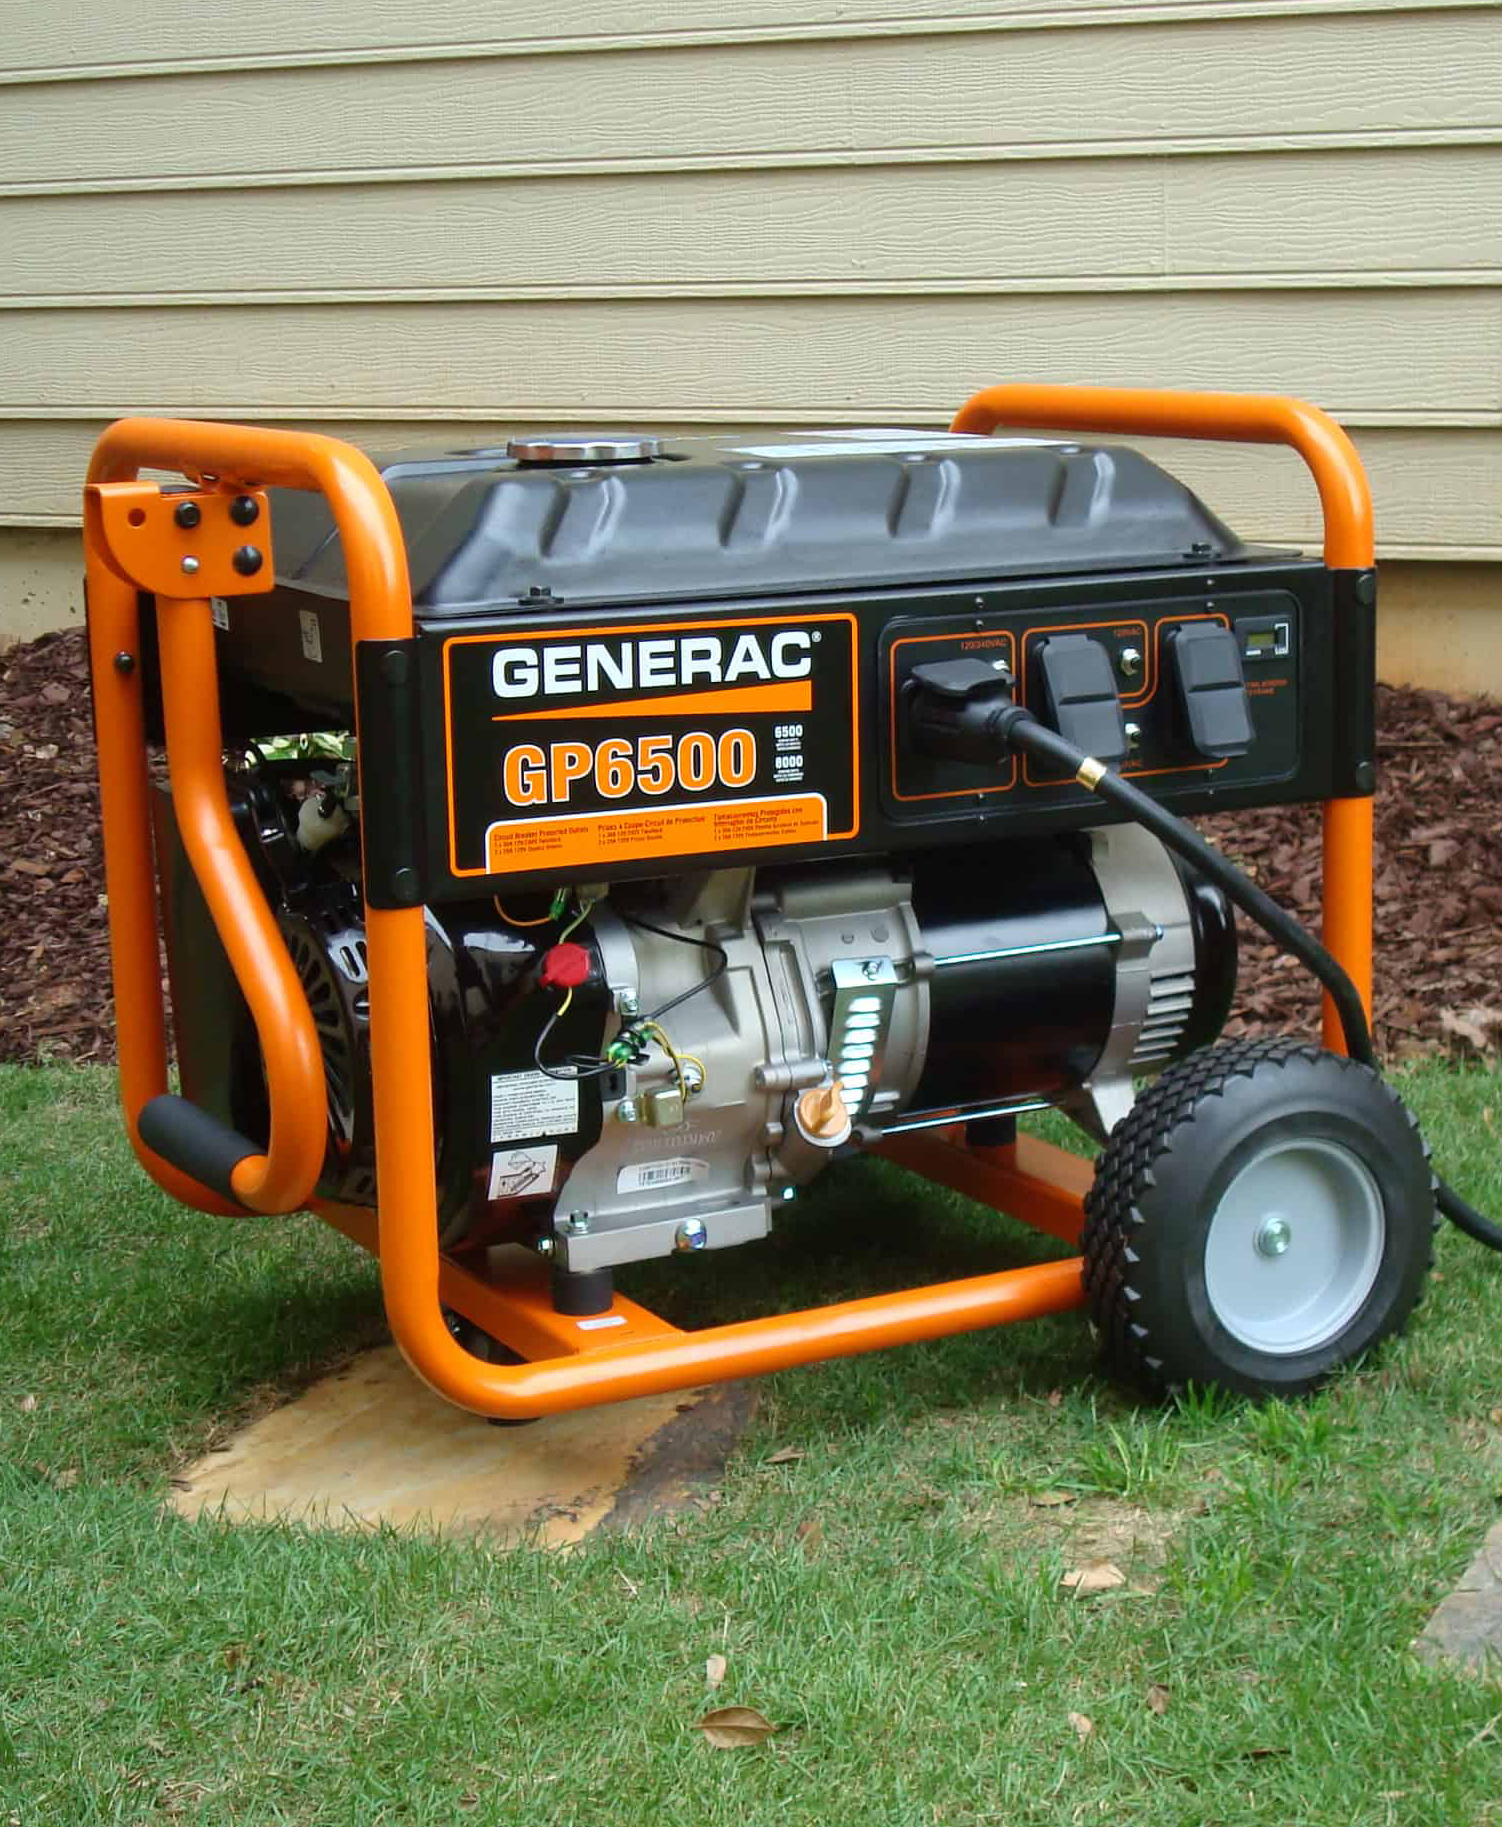 A generator, ready for use